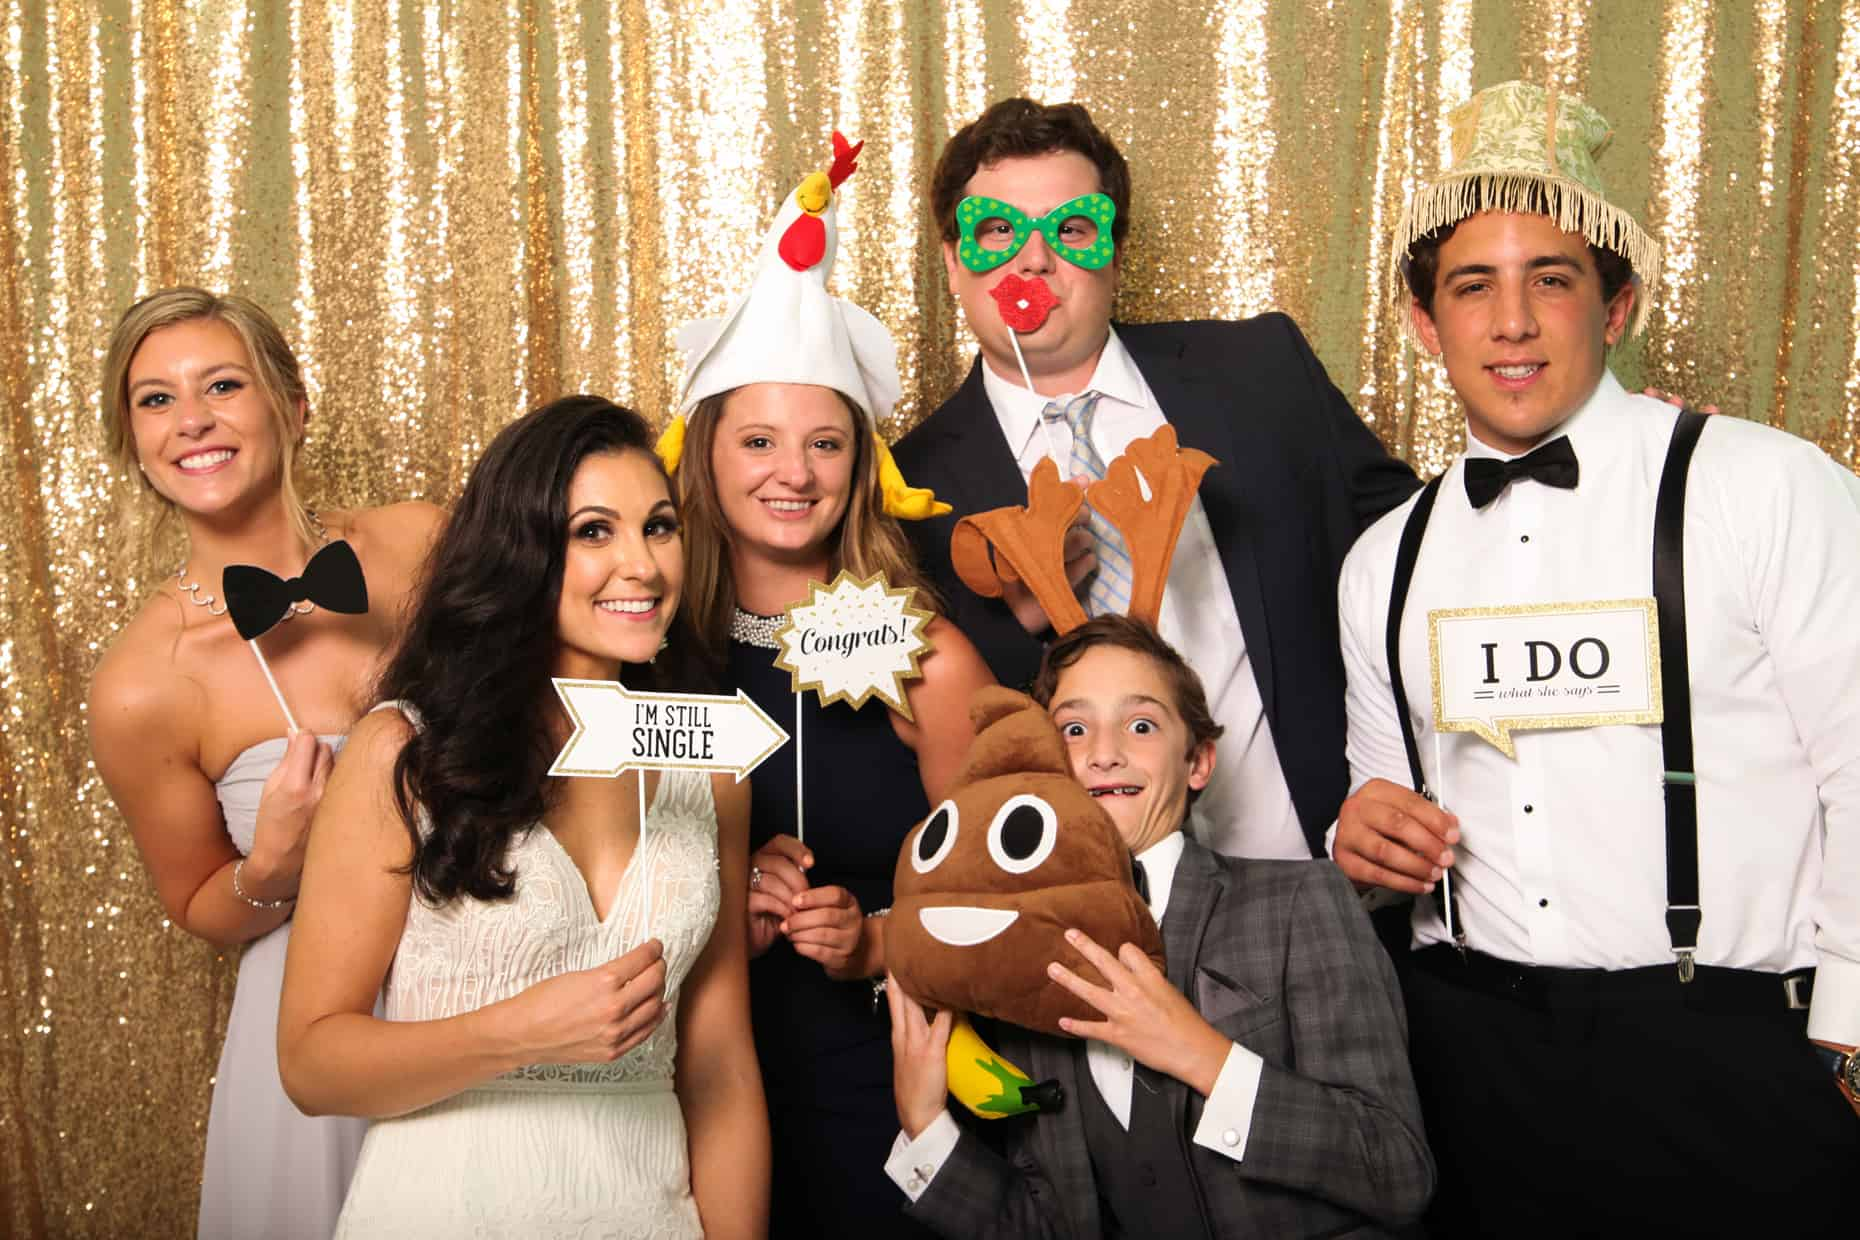 Congress Hall Cape May Wedding Photo Booth Photo